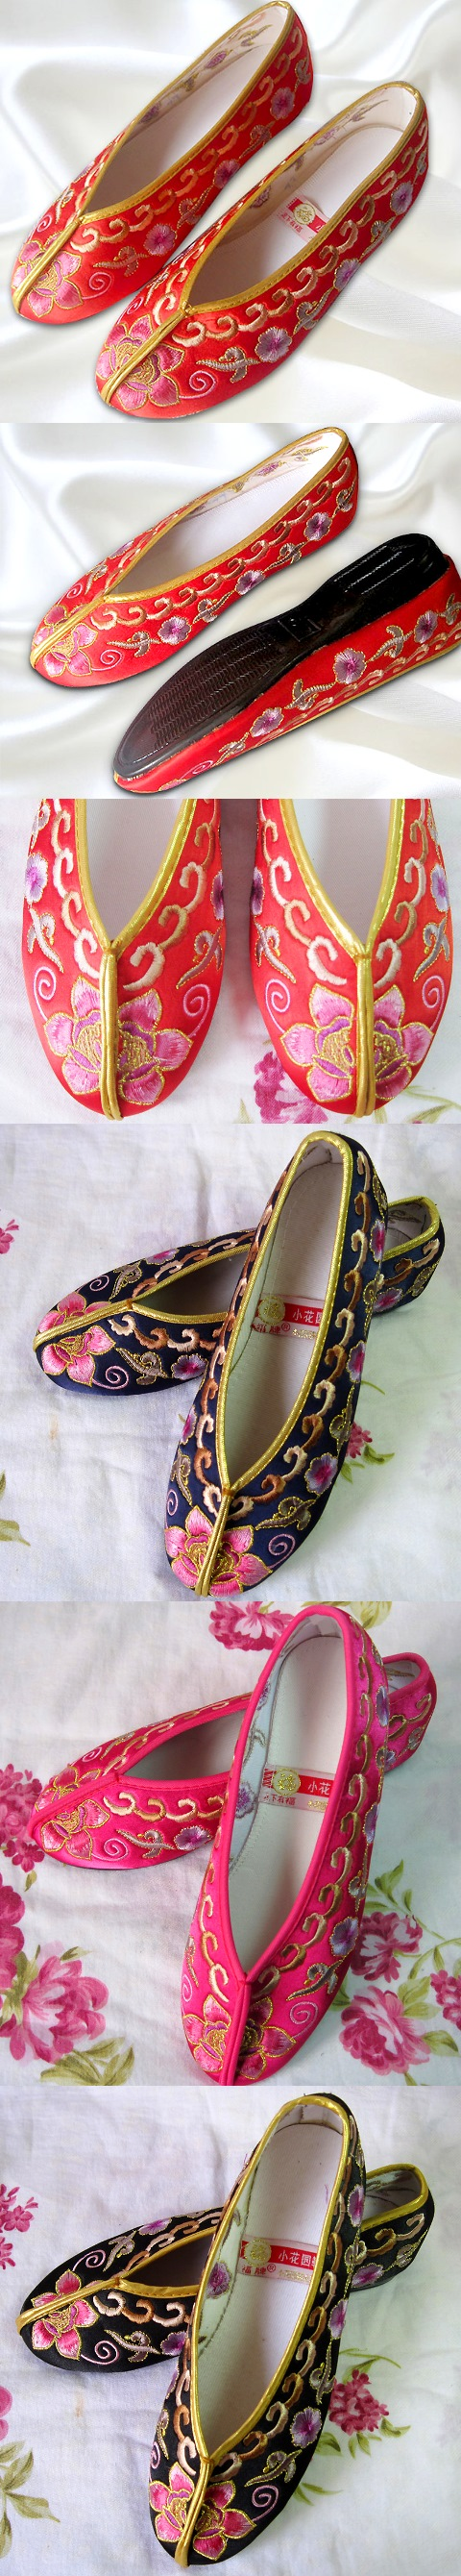 Floral Mosaic Gege Embroidery Shoes (Multicolor)